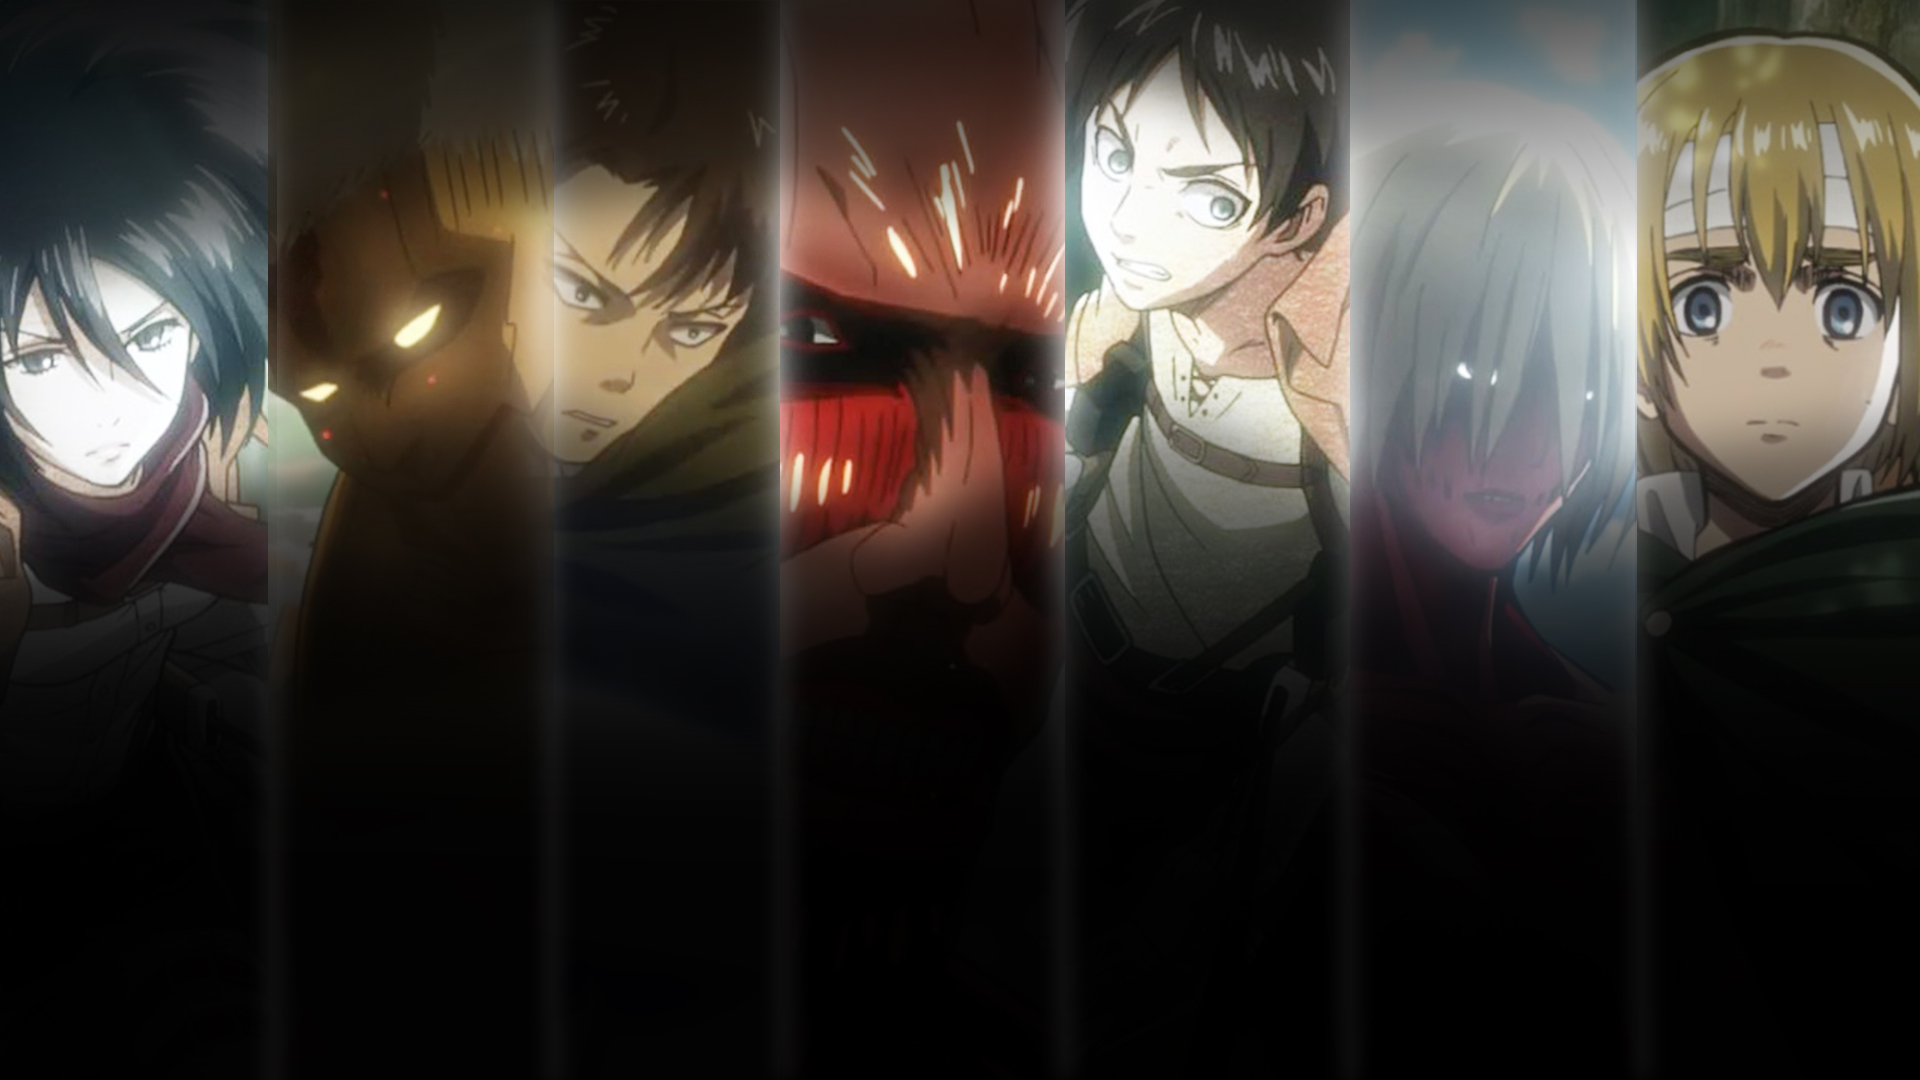 shingeki no kyojin wallpaper hd 1920x1080